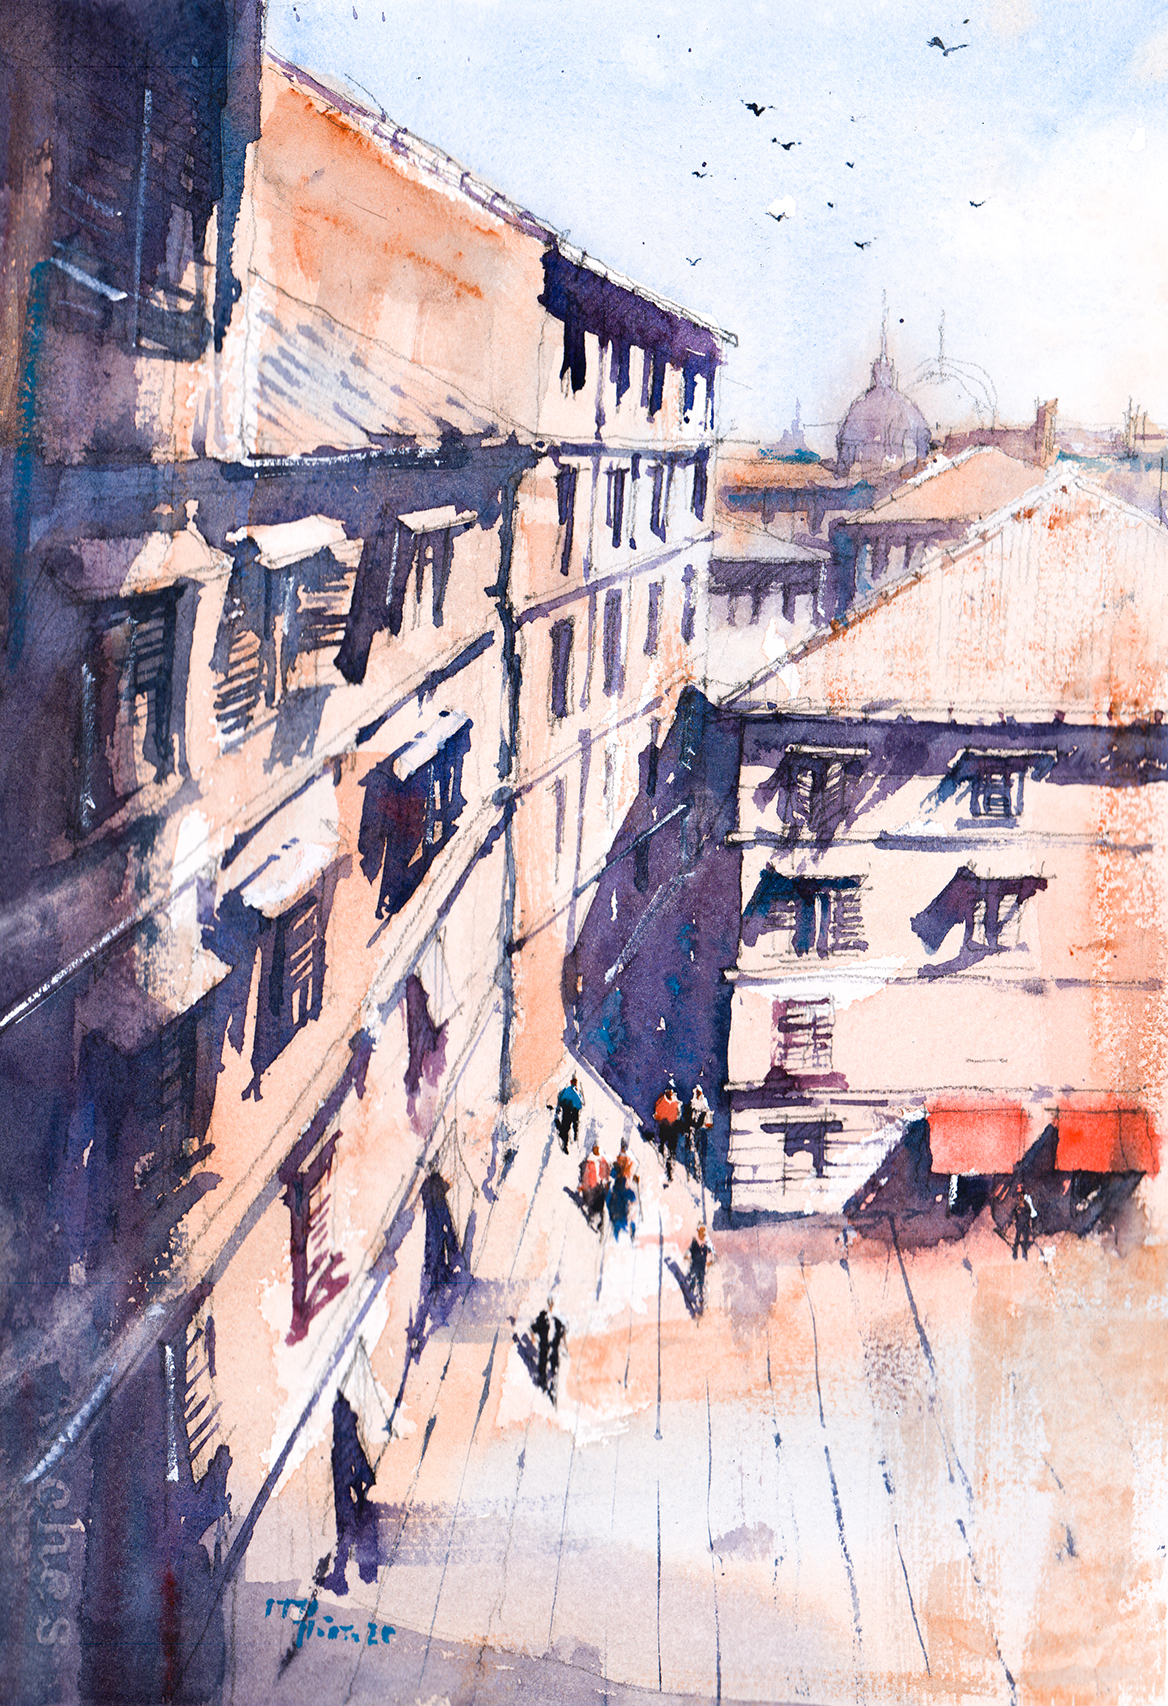 Watercolor painting of Piazza Navona, Rome, Italy